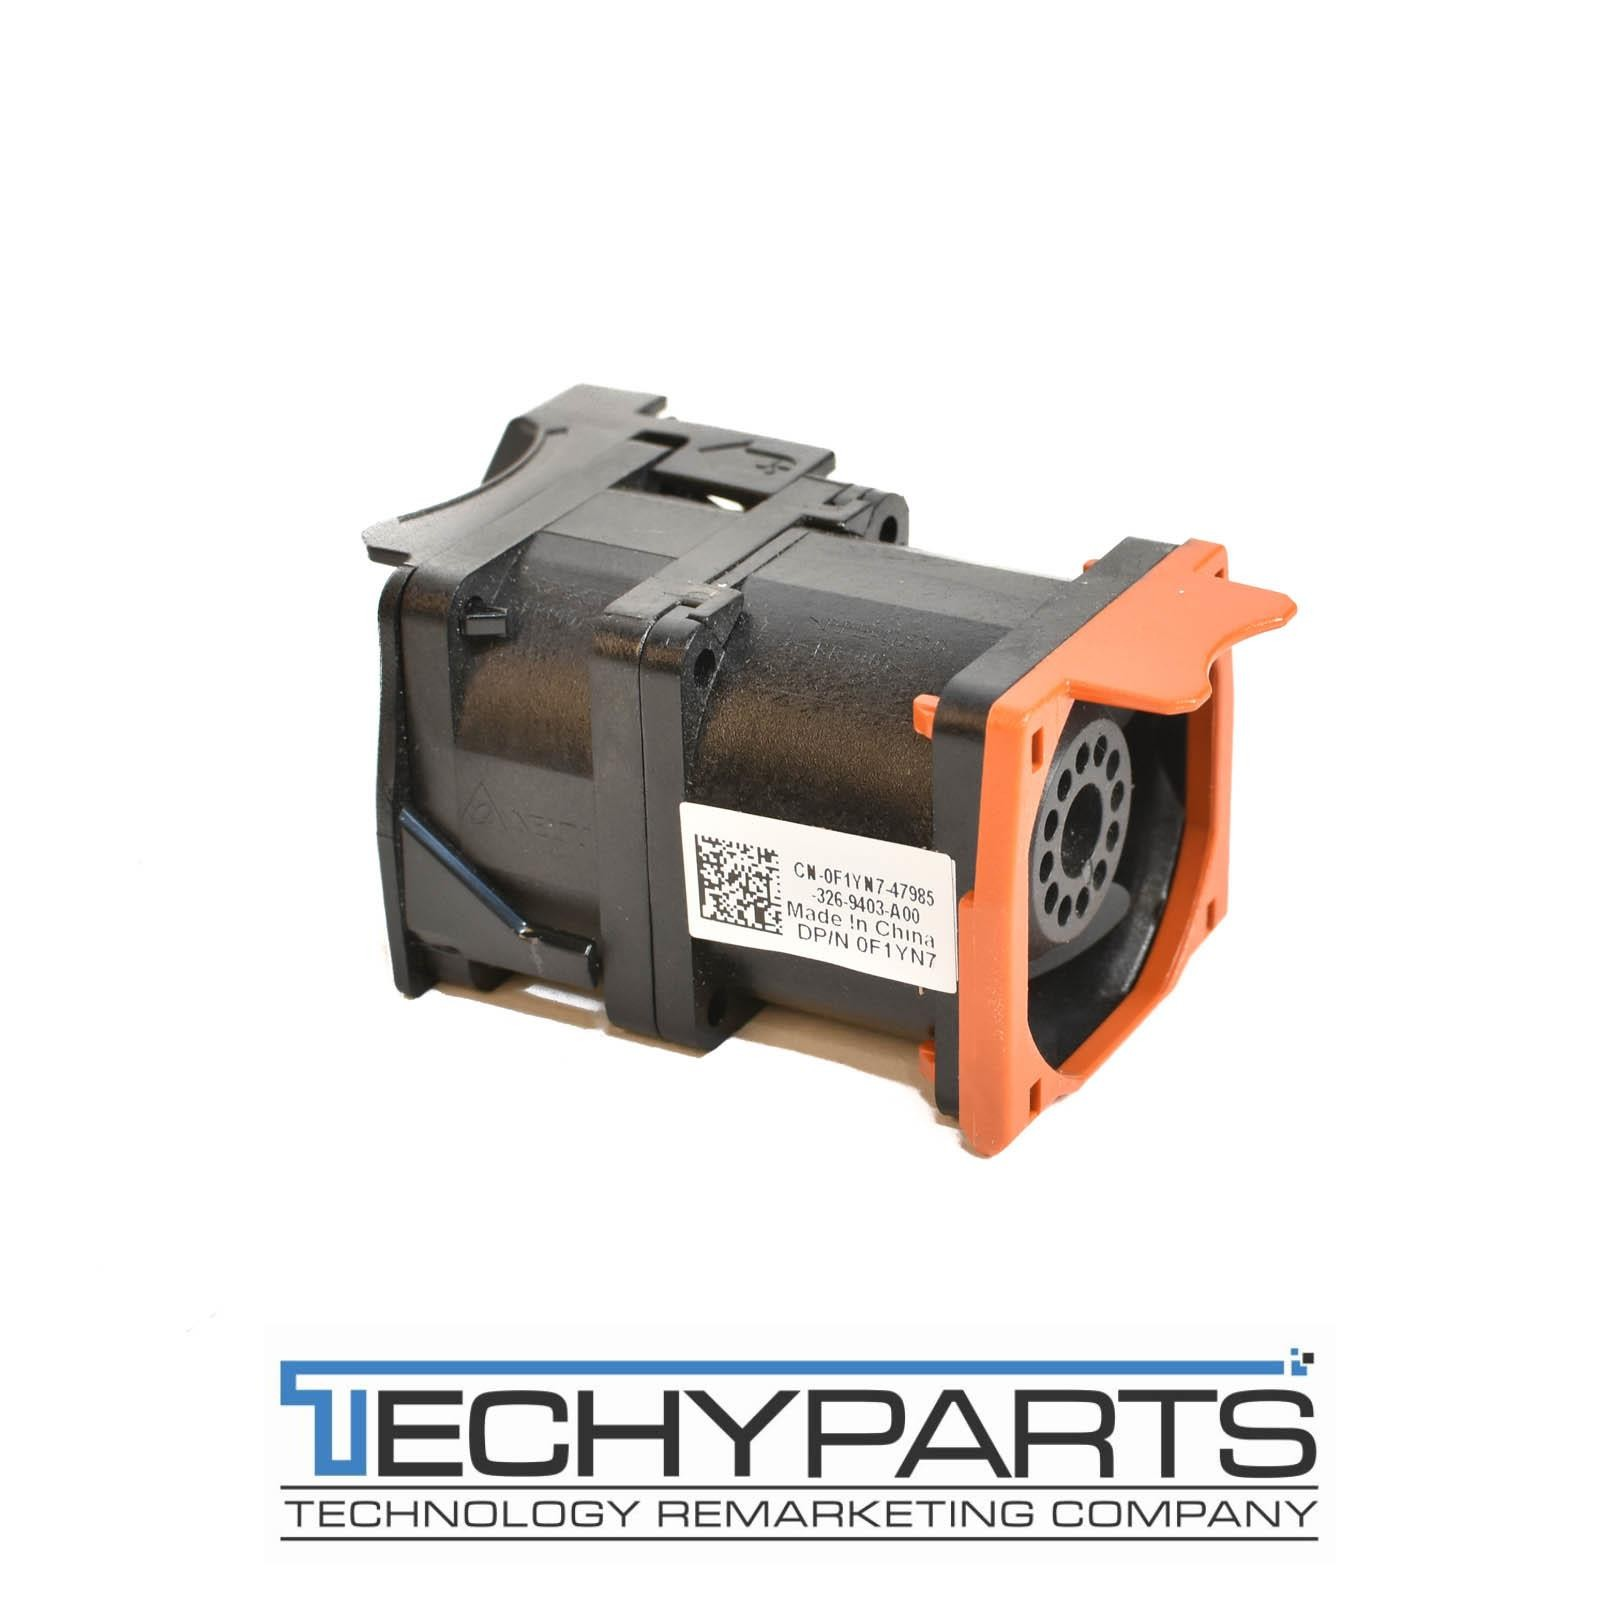 Dell F1YN7 Hot-Swap System Chassis Cooling Fan for PowerEdge